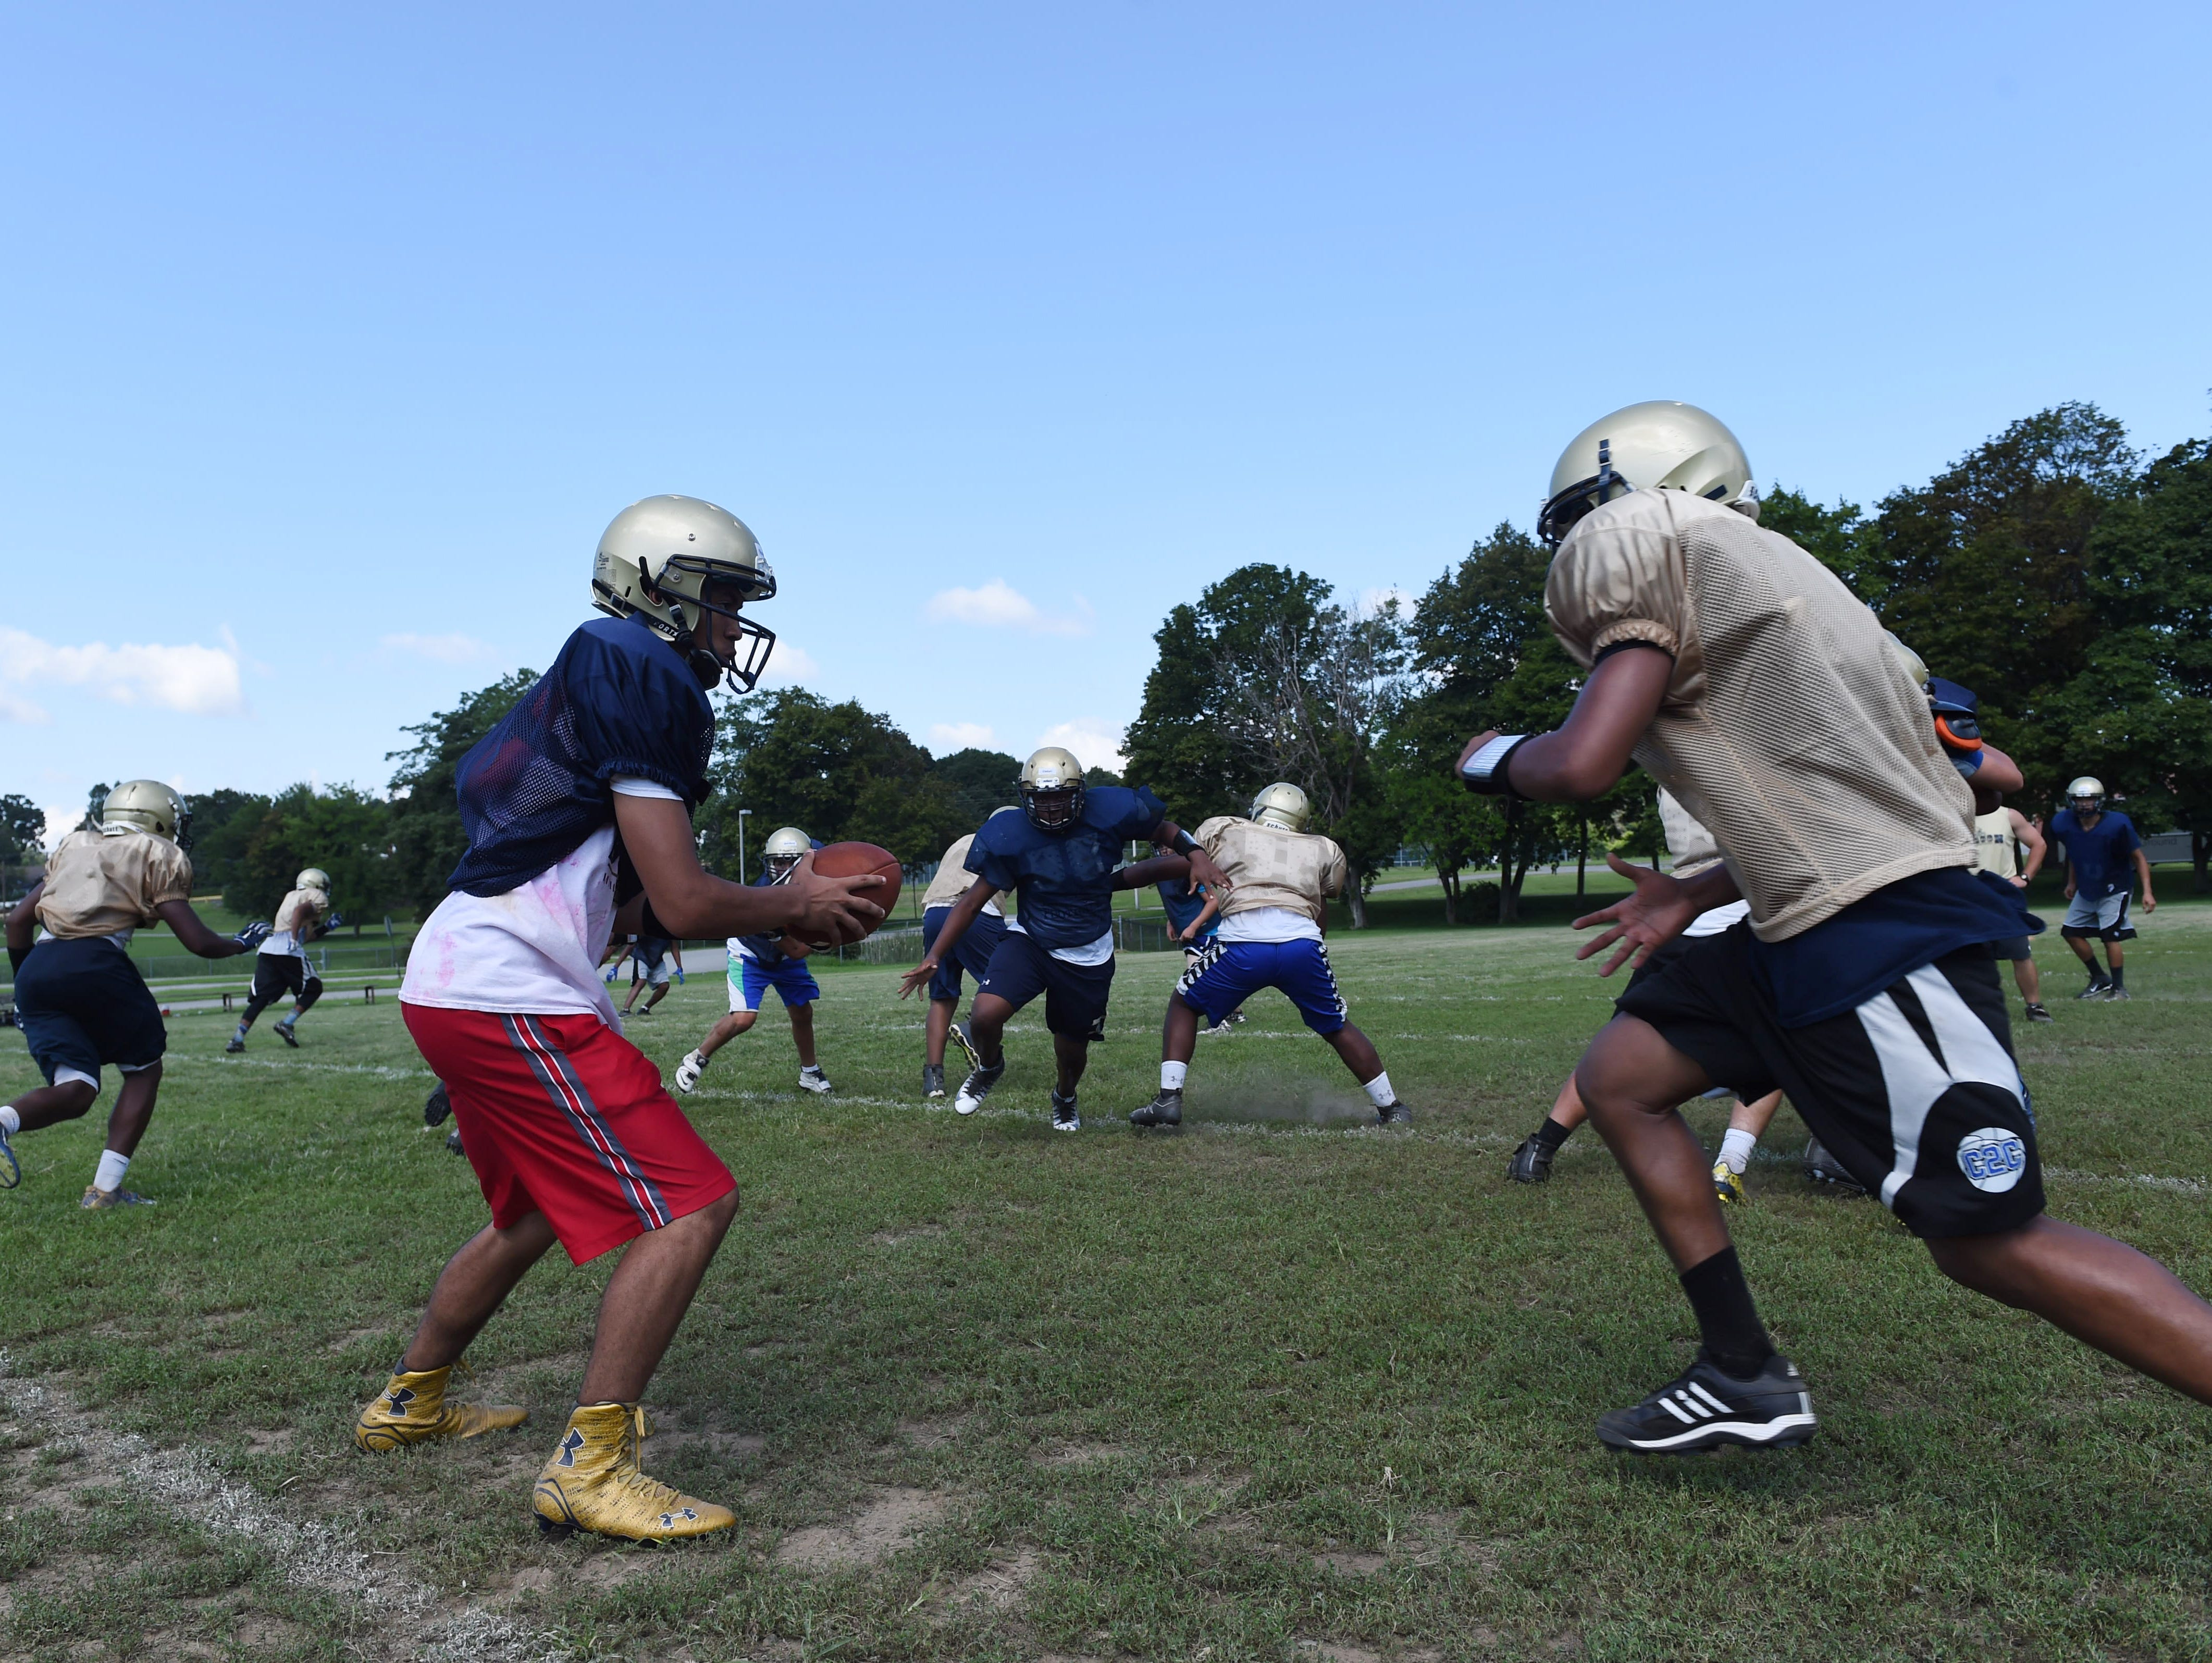 Beacon High School's from left, Jaden Navarro hands off the ball to Jerome Henderson during Friday's preseason practice at Rombout Middle School.